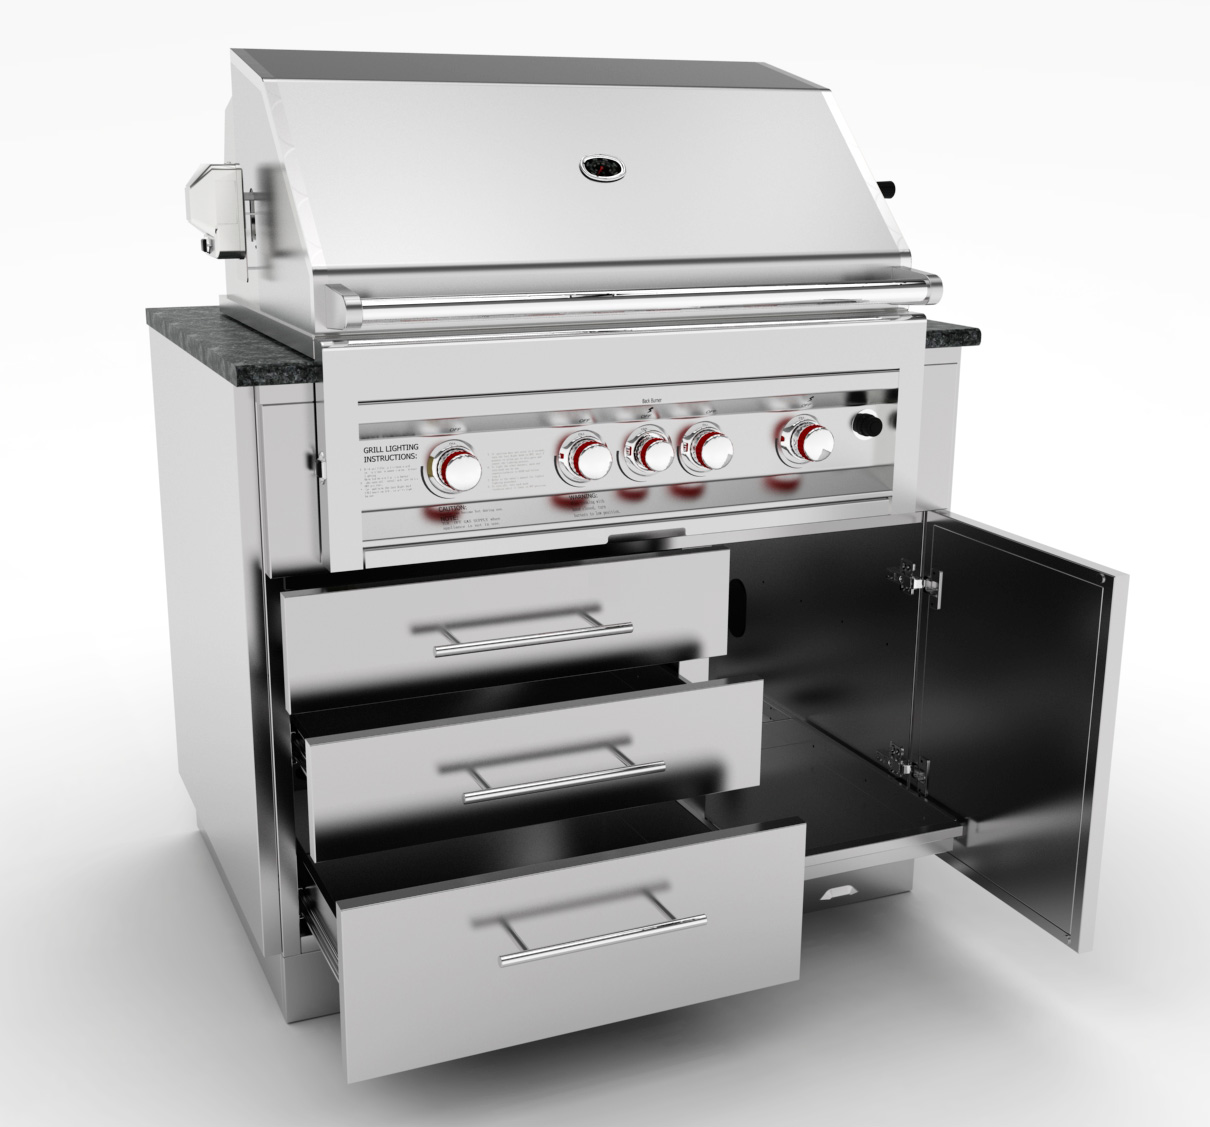 BBQ gas grills:sunstonemetalproducts.com